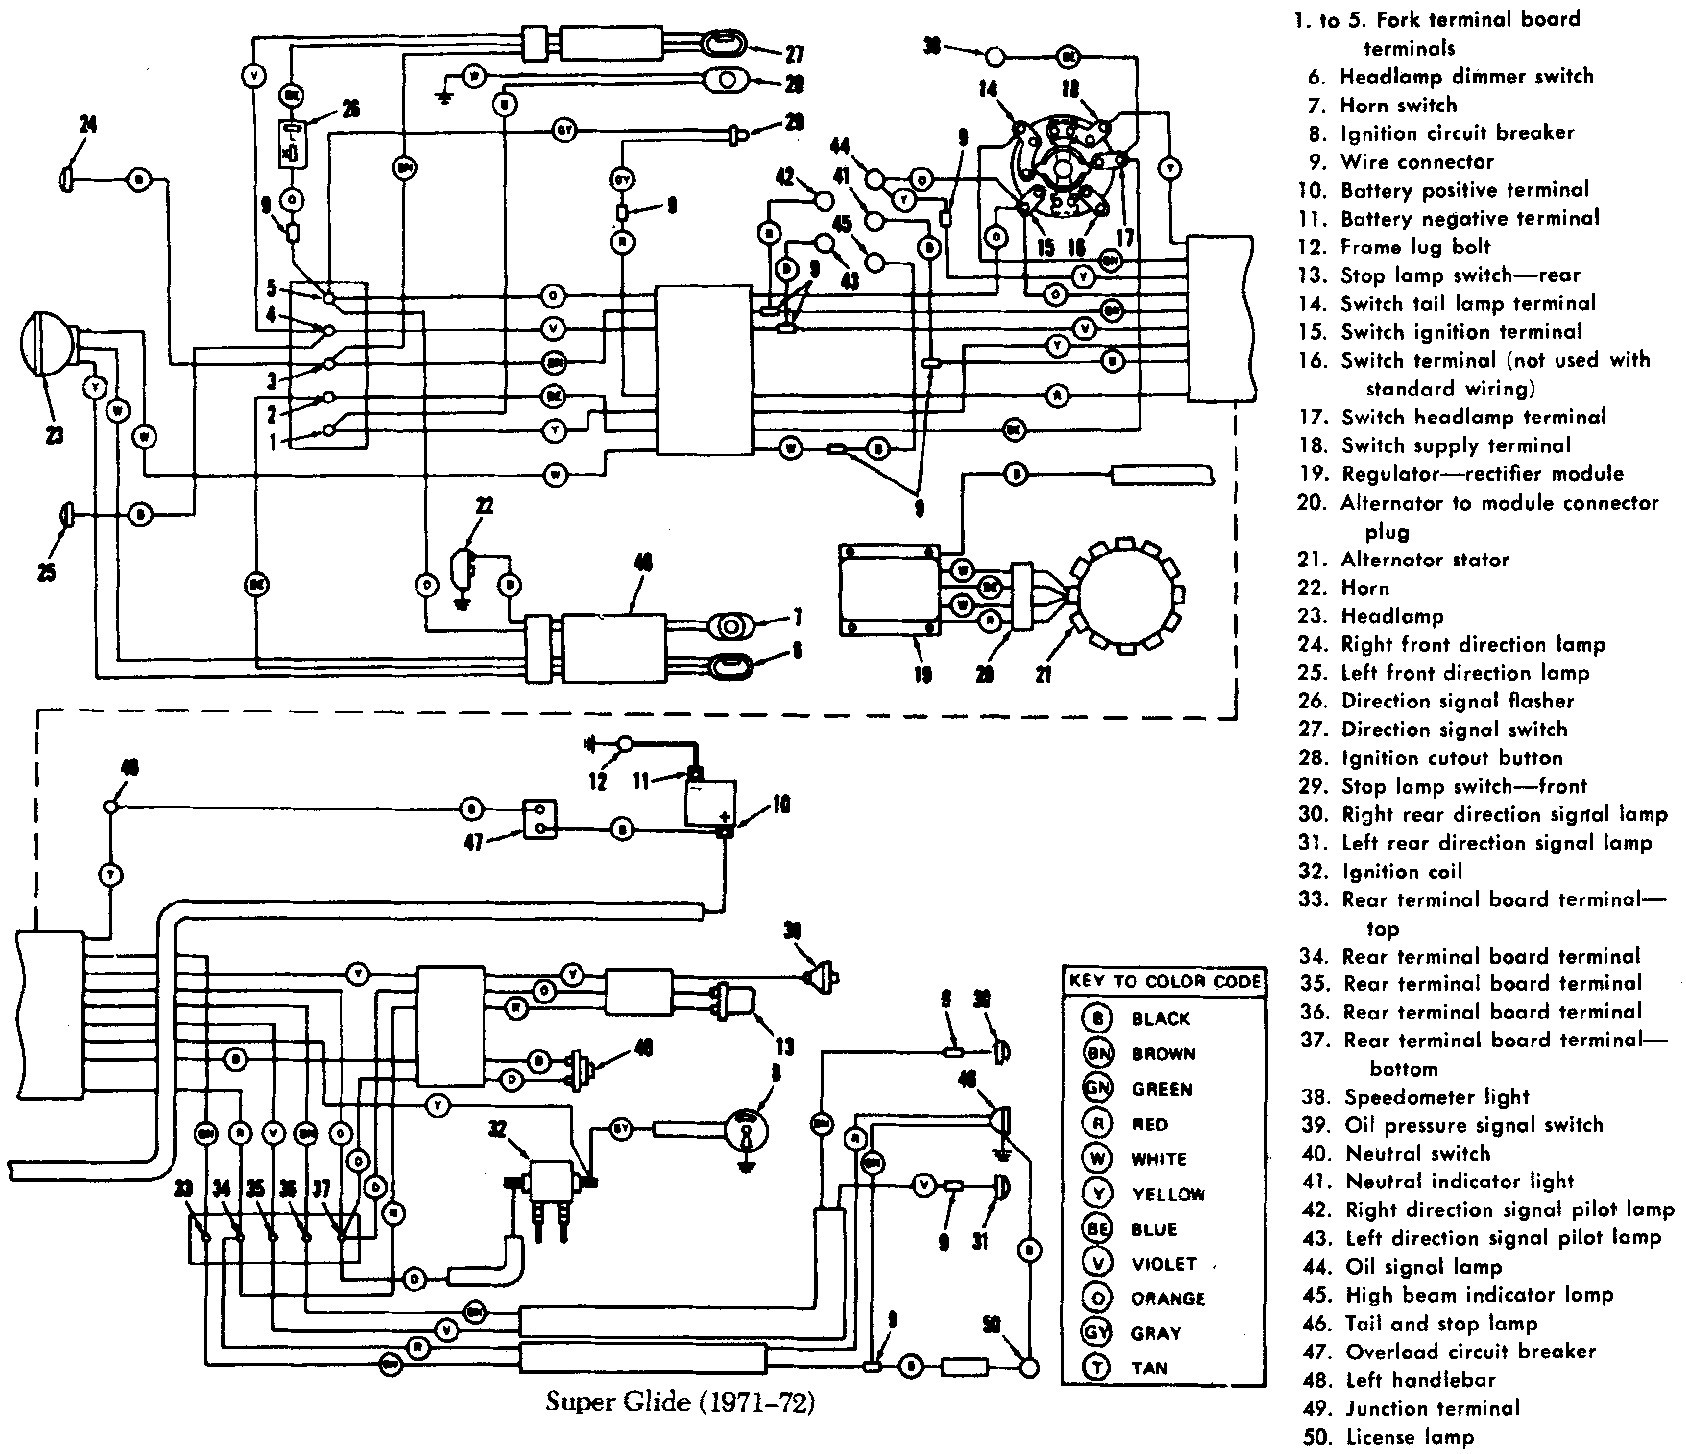 hight resolution of harley v twin engine diagram fresh harley davidson ignition switch wiring diagram diagram of harley v